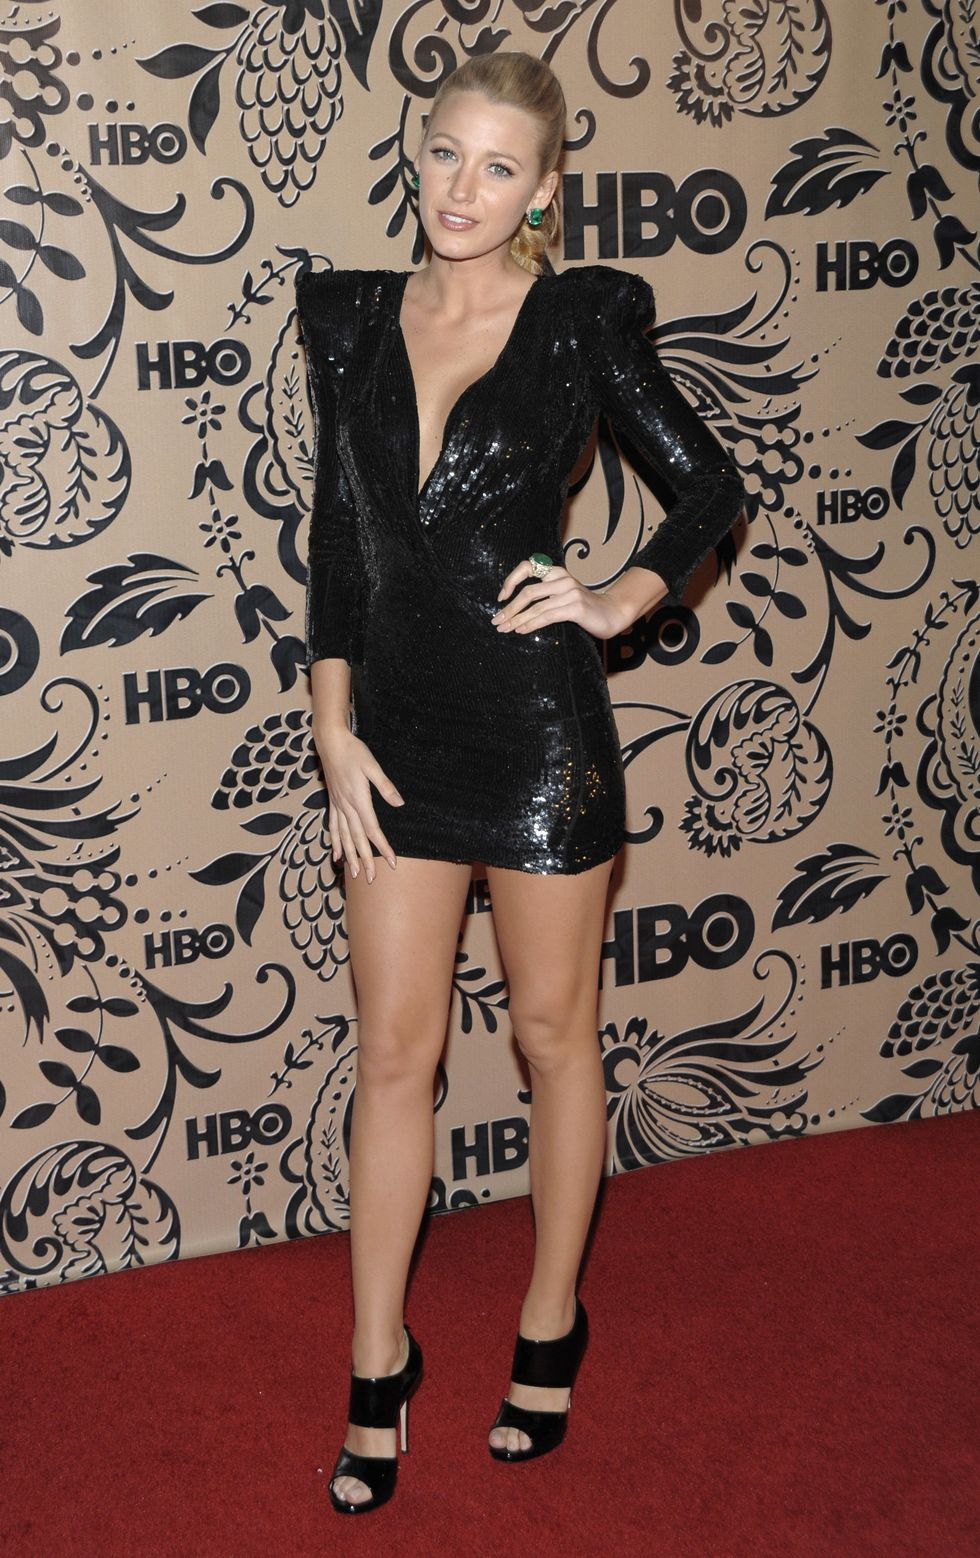 blake-lively-hbo-emmy-party-in-west-hollywood-01